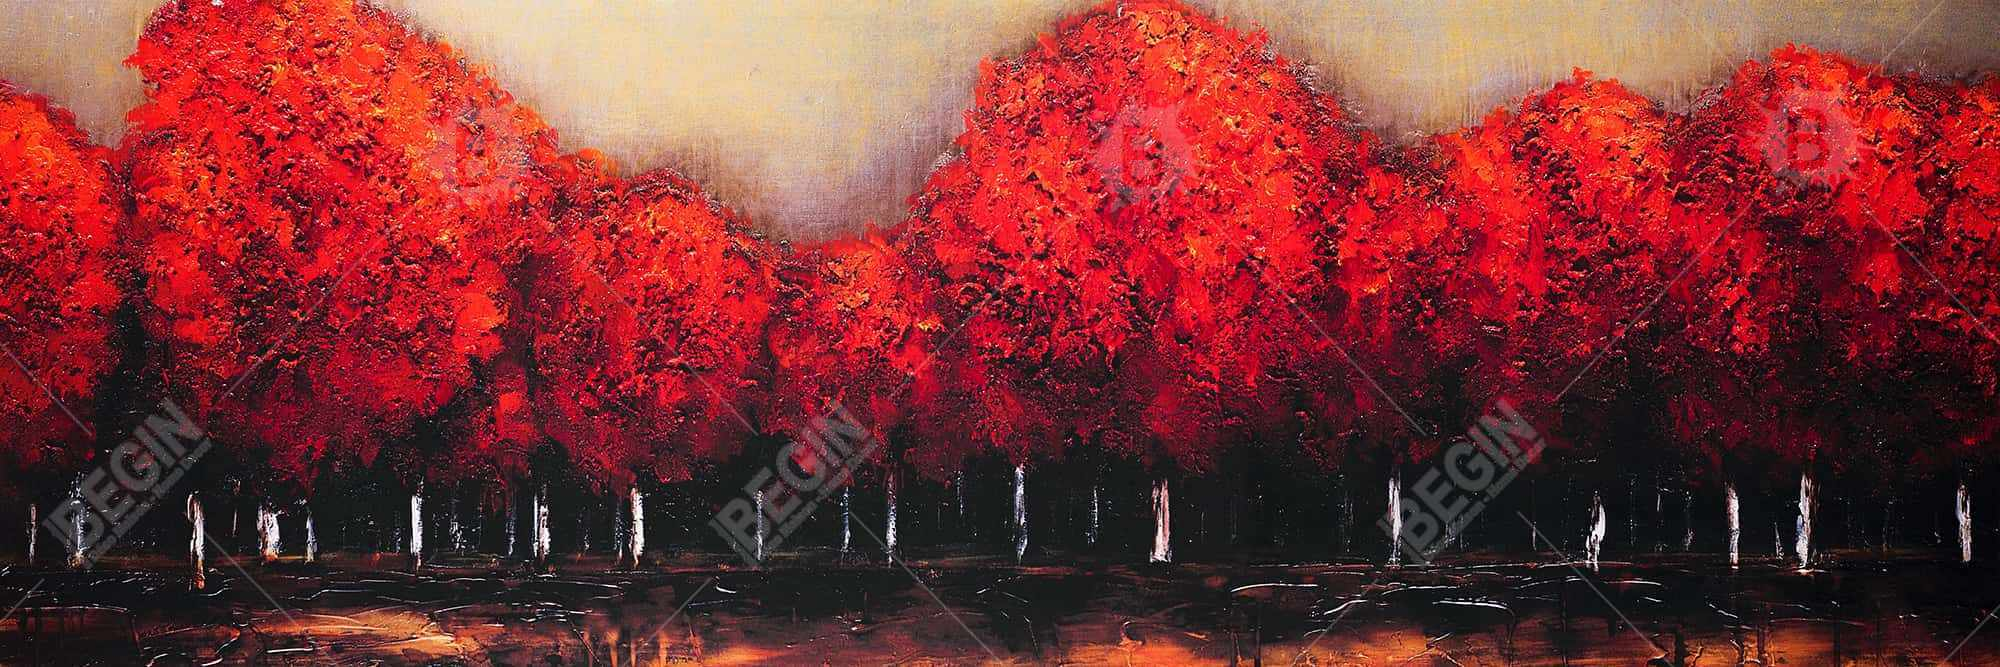 Red trees by a dark day